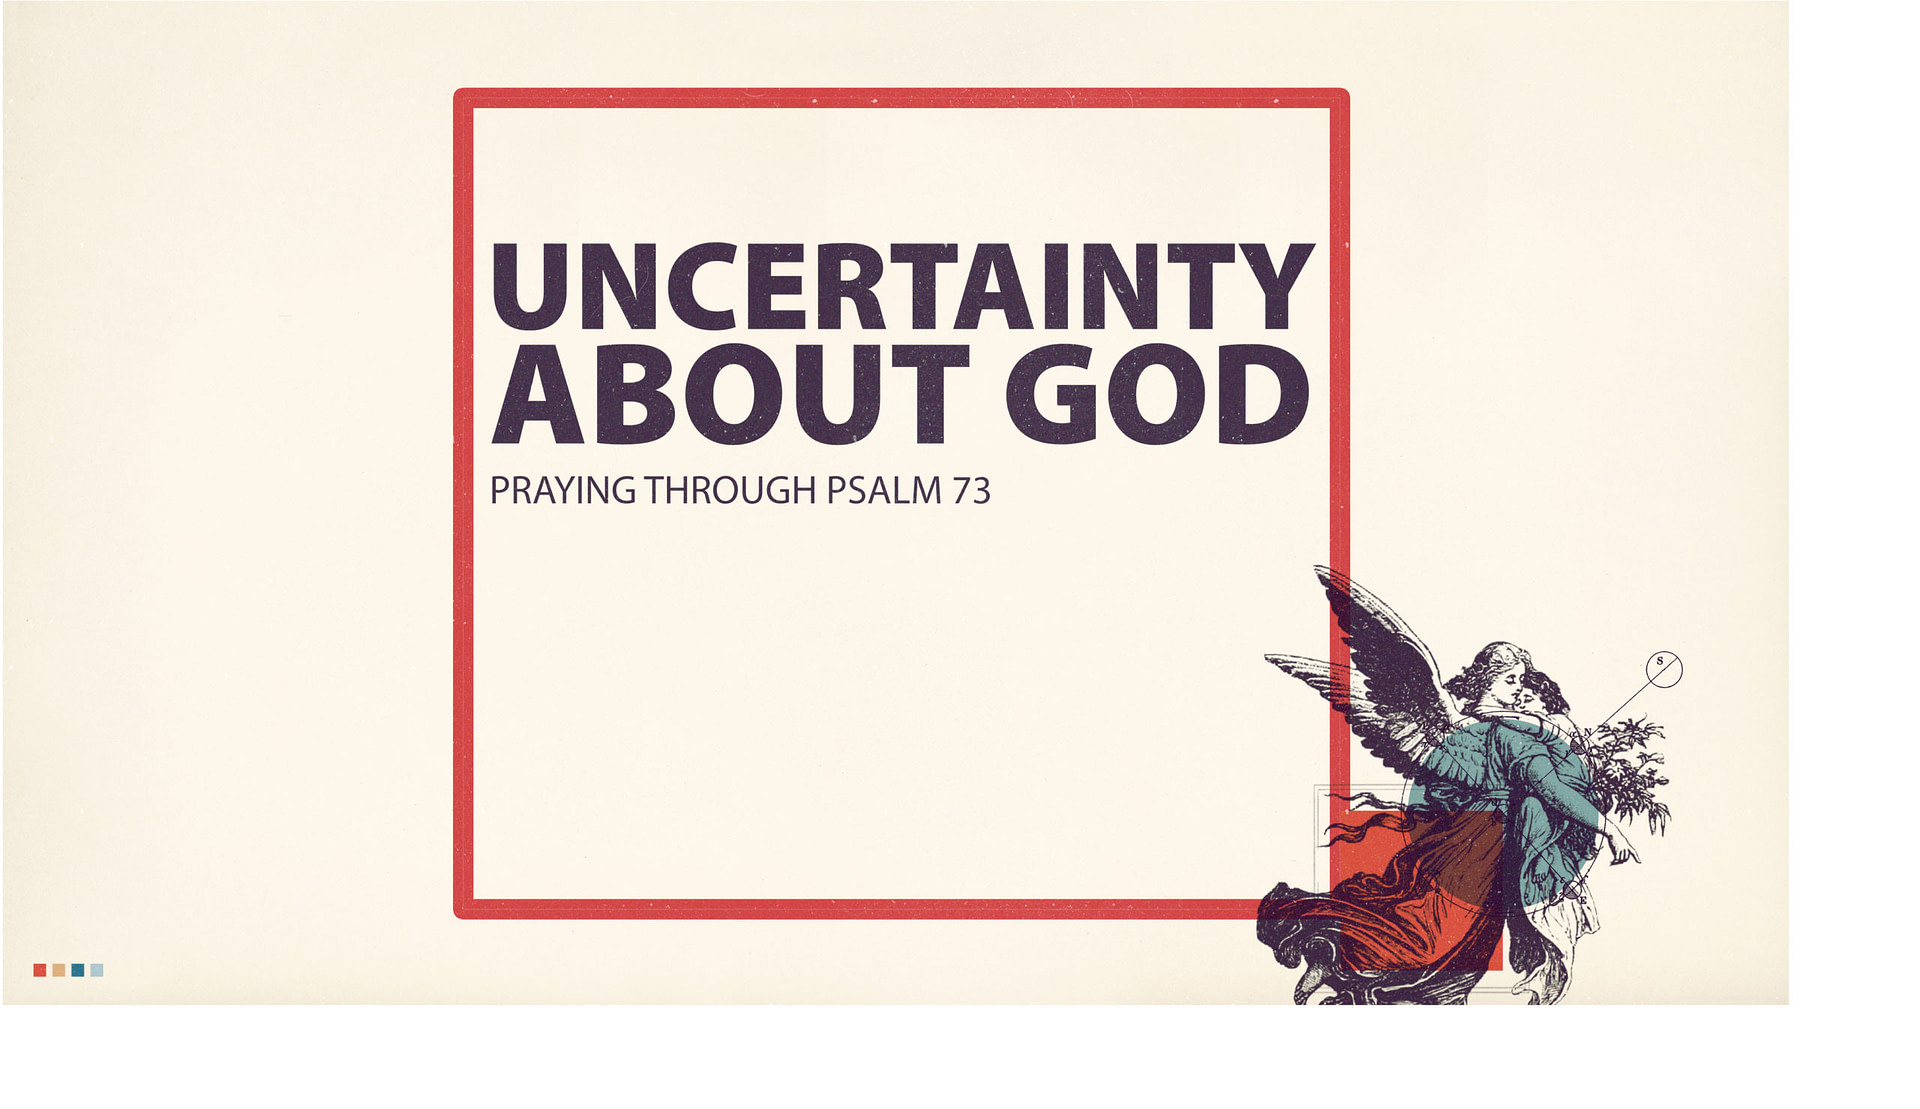 Uncertainty About God